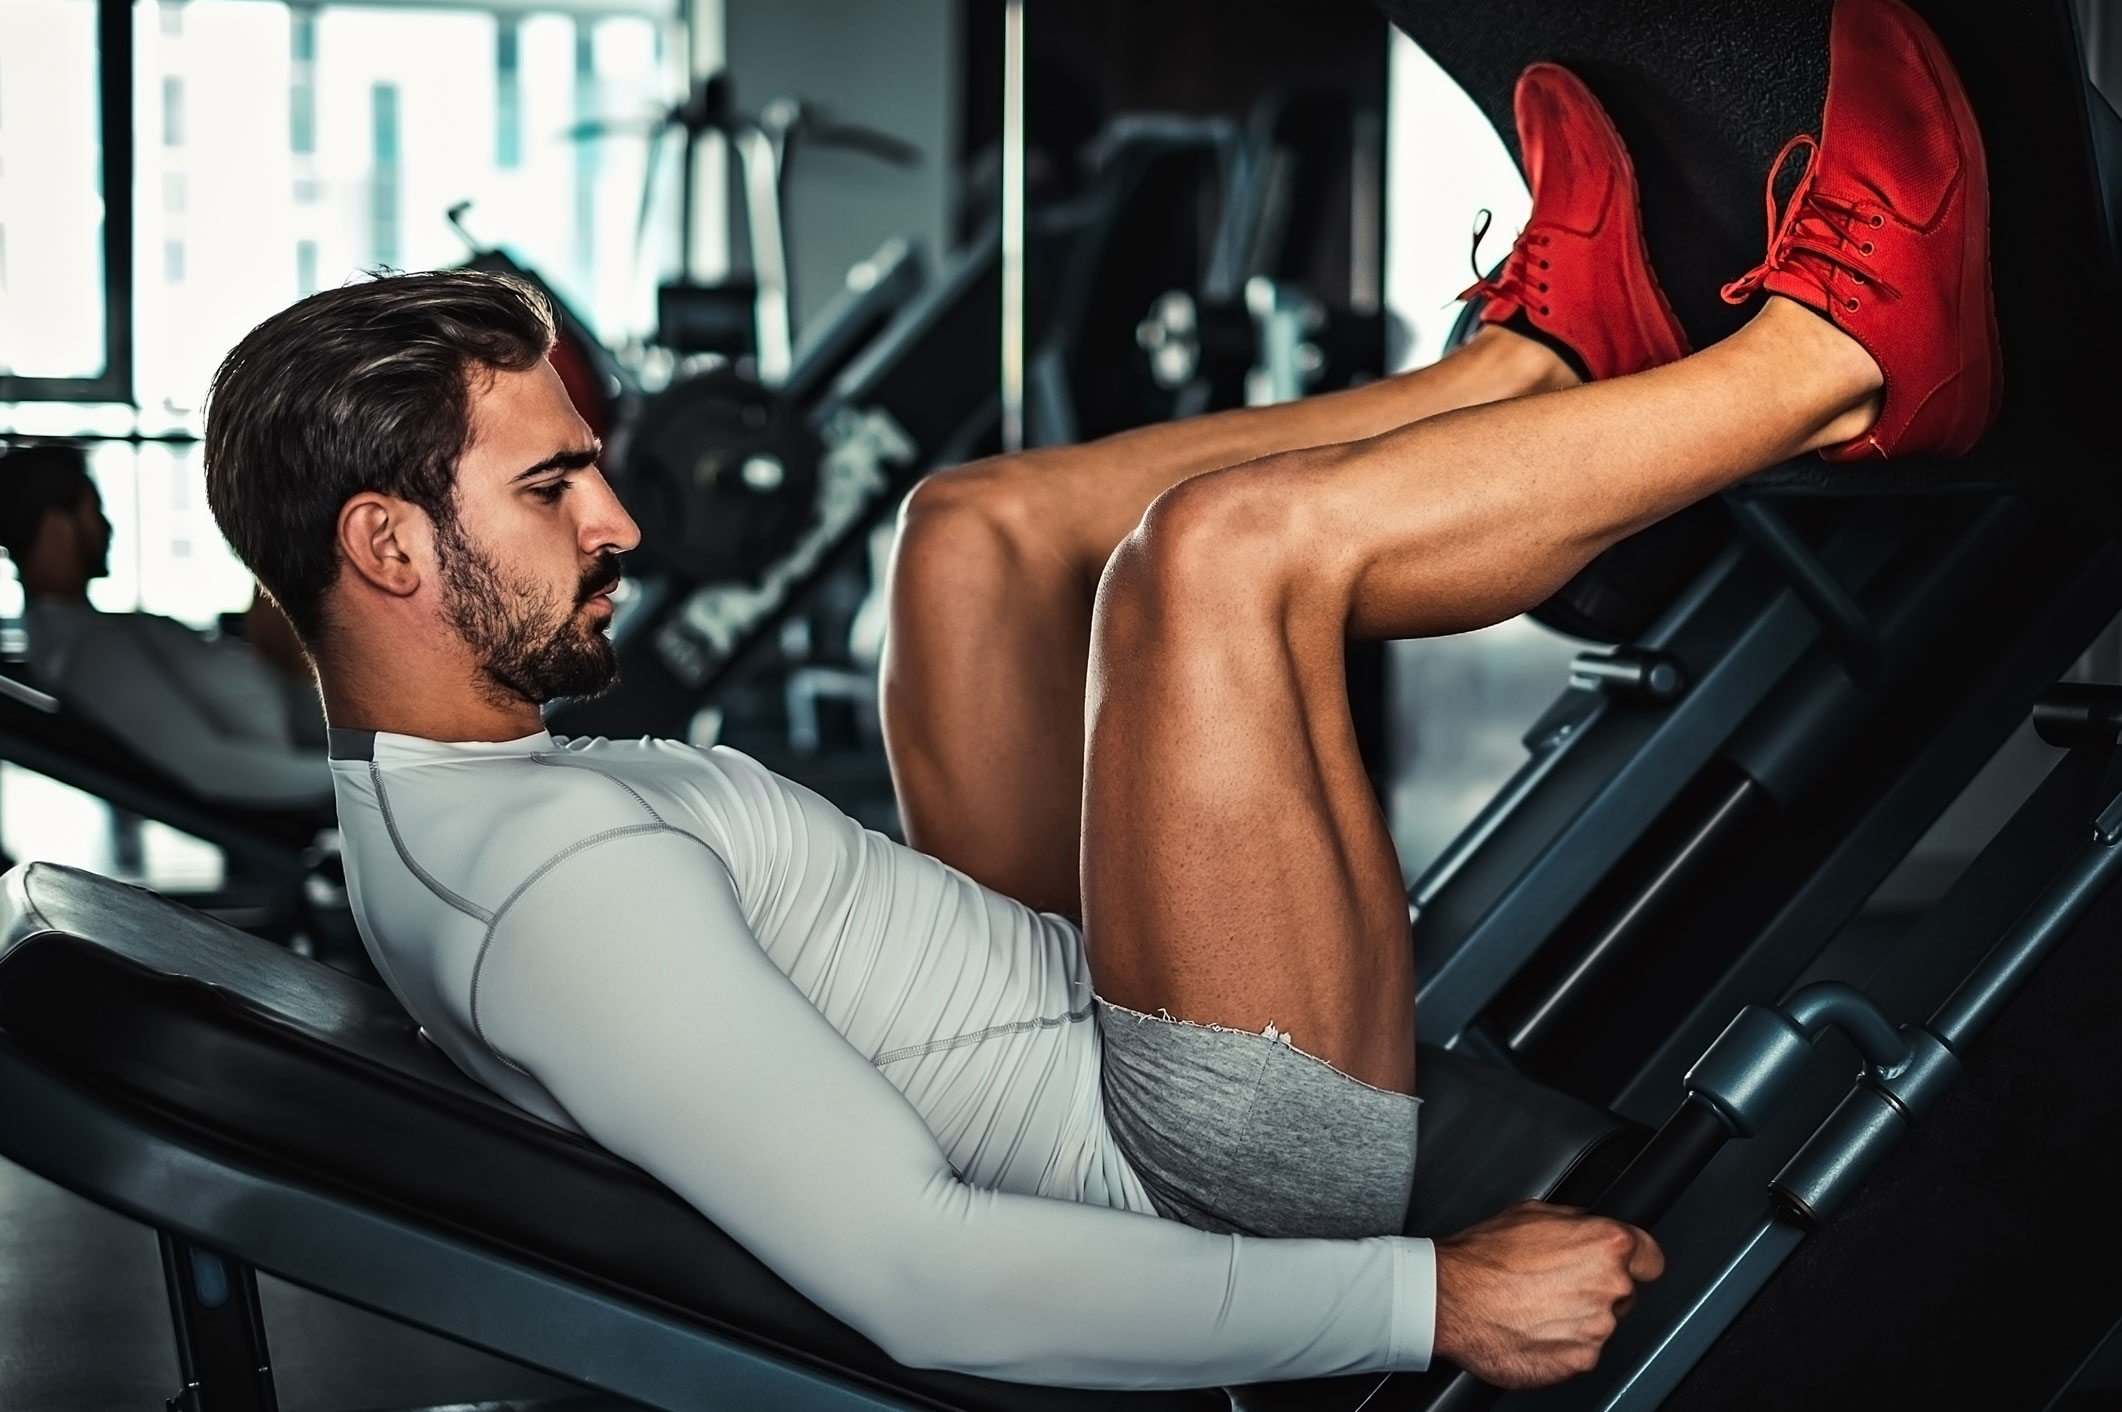 The Dumb Mistake You May Be Making on the Leg Press